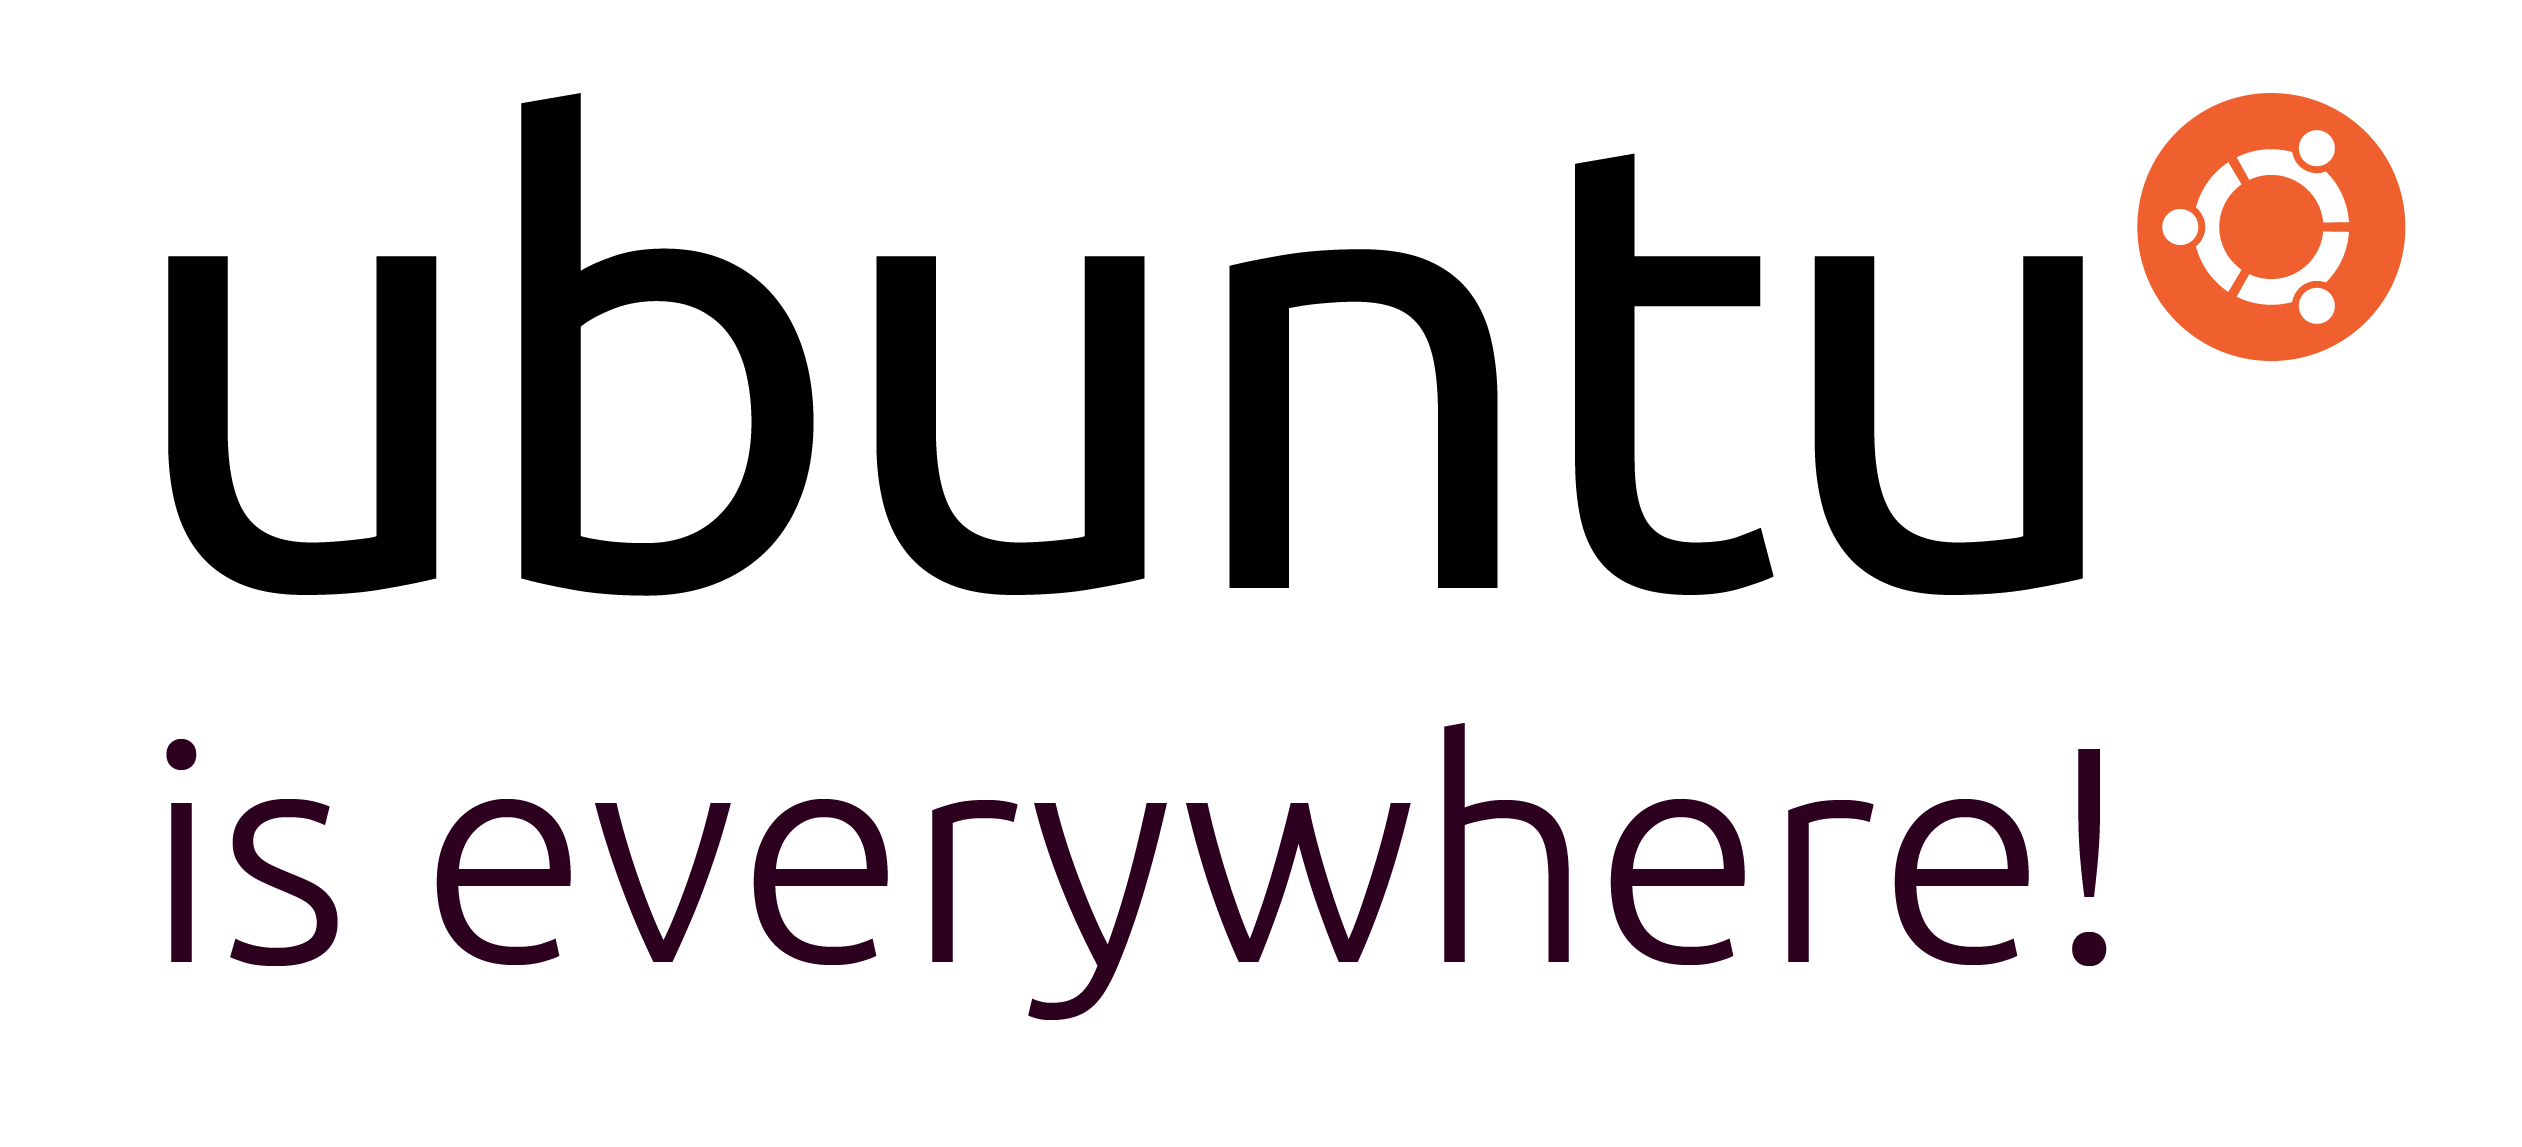 How many people use Ubuntu?